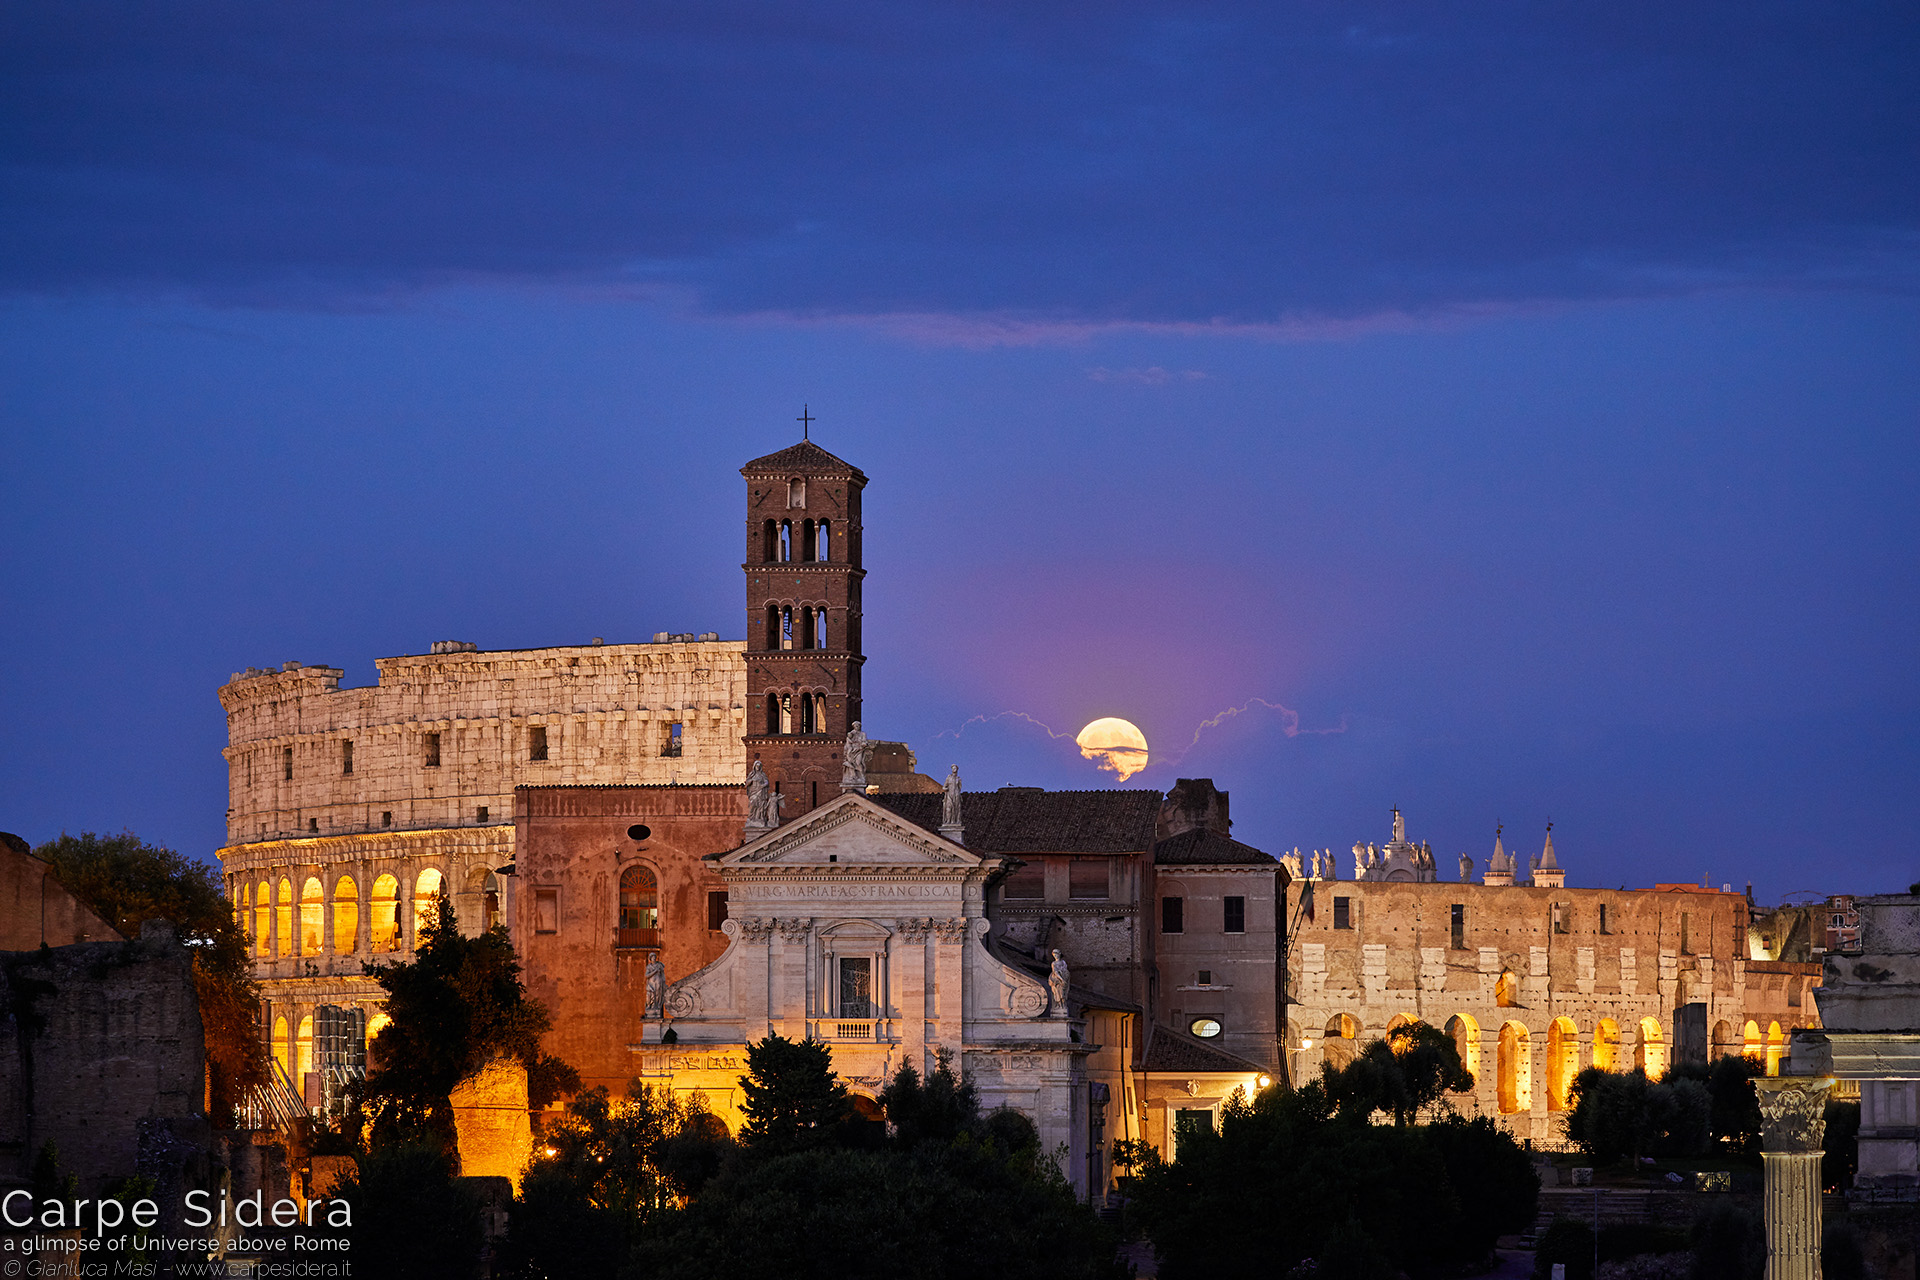 4. The full Moon rises behind the Flavian Amphitheatre.